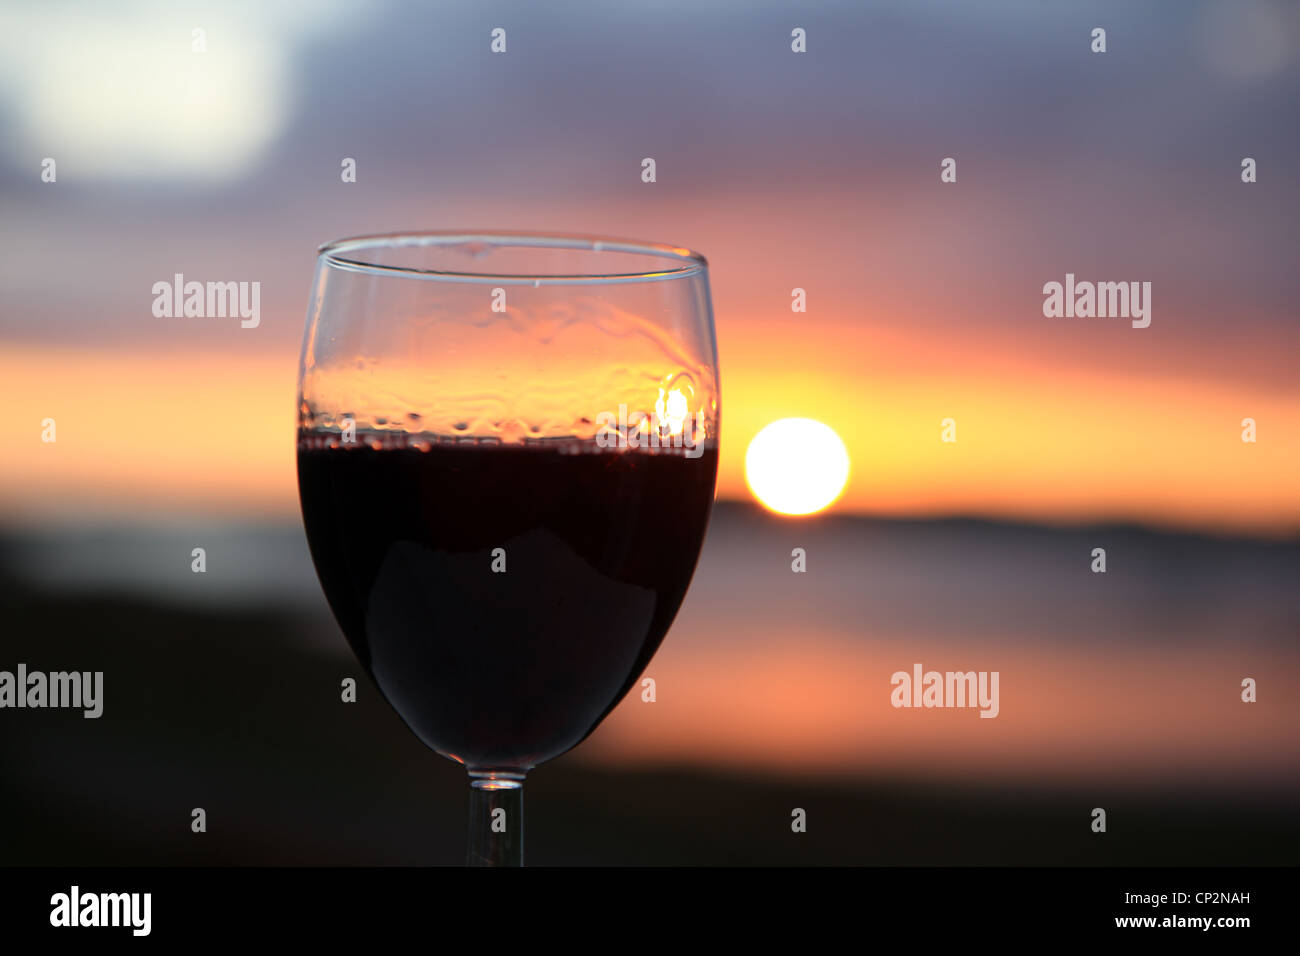 Glass of red wine against a stunning sunset - Stock Image